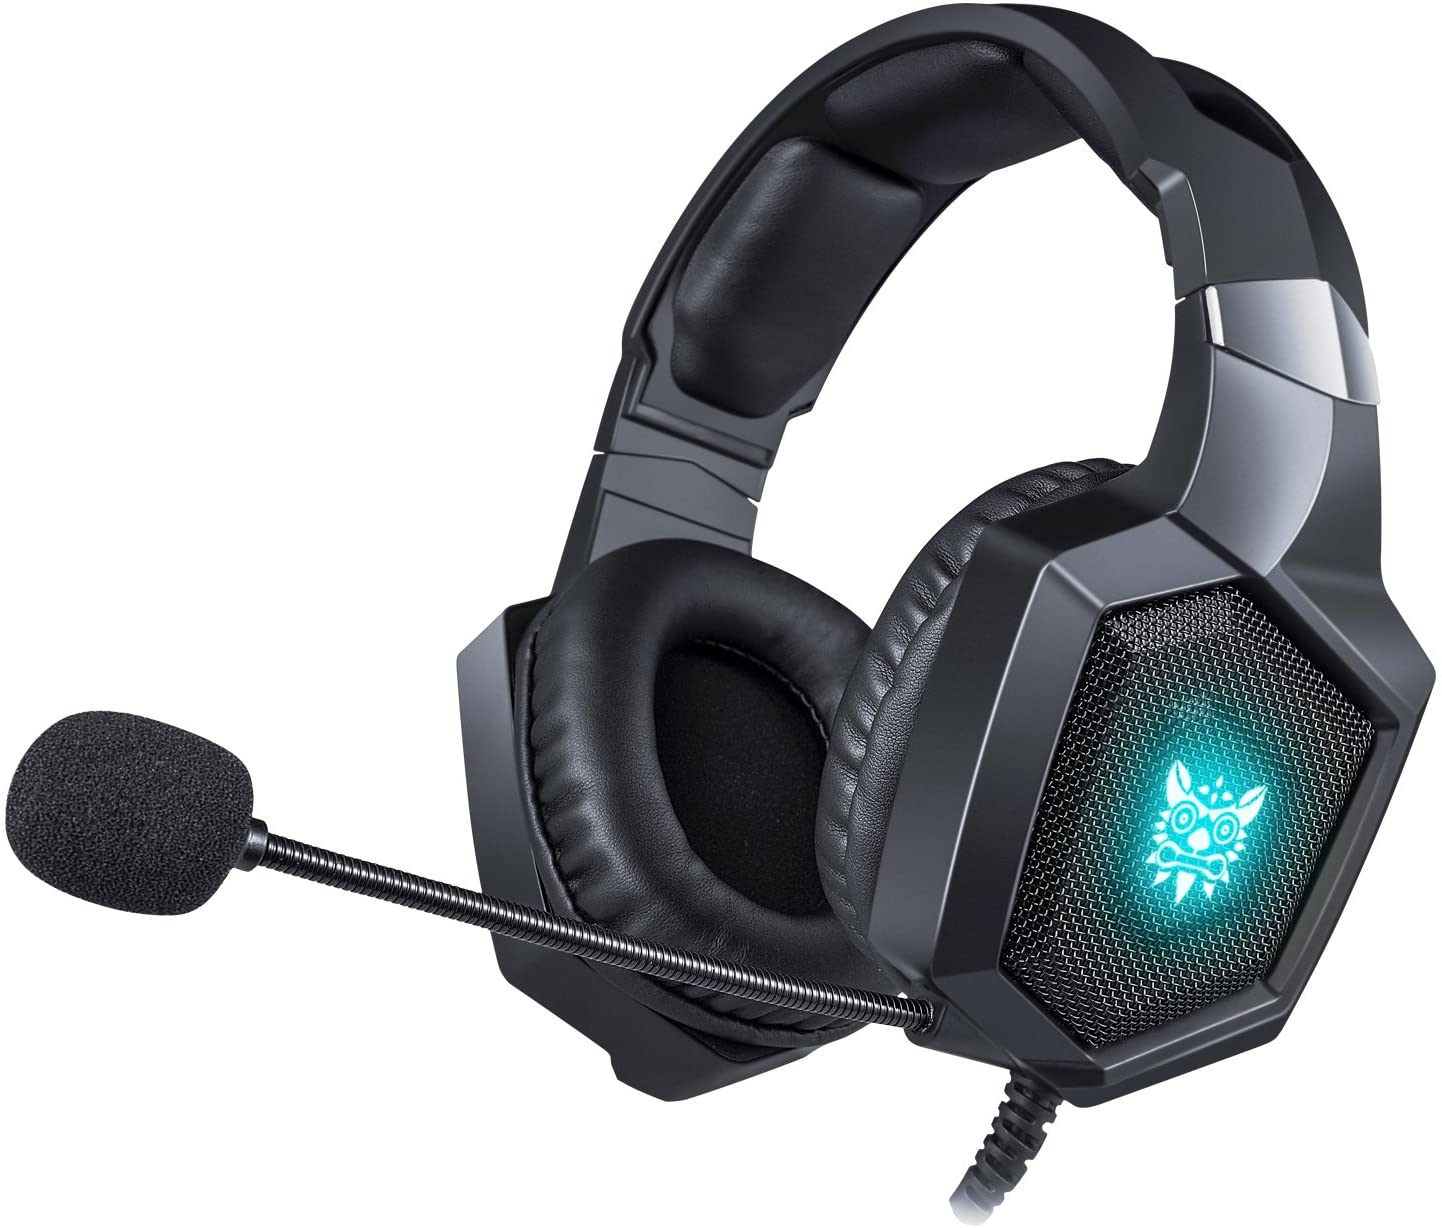 Gaming Headset Xbox One Headset, PS4 Headset with Noise Canceling Mic, PC Headset with LED Light